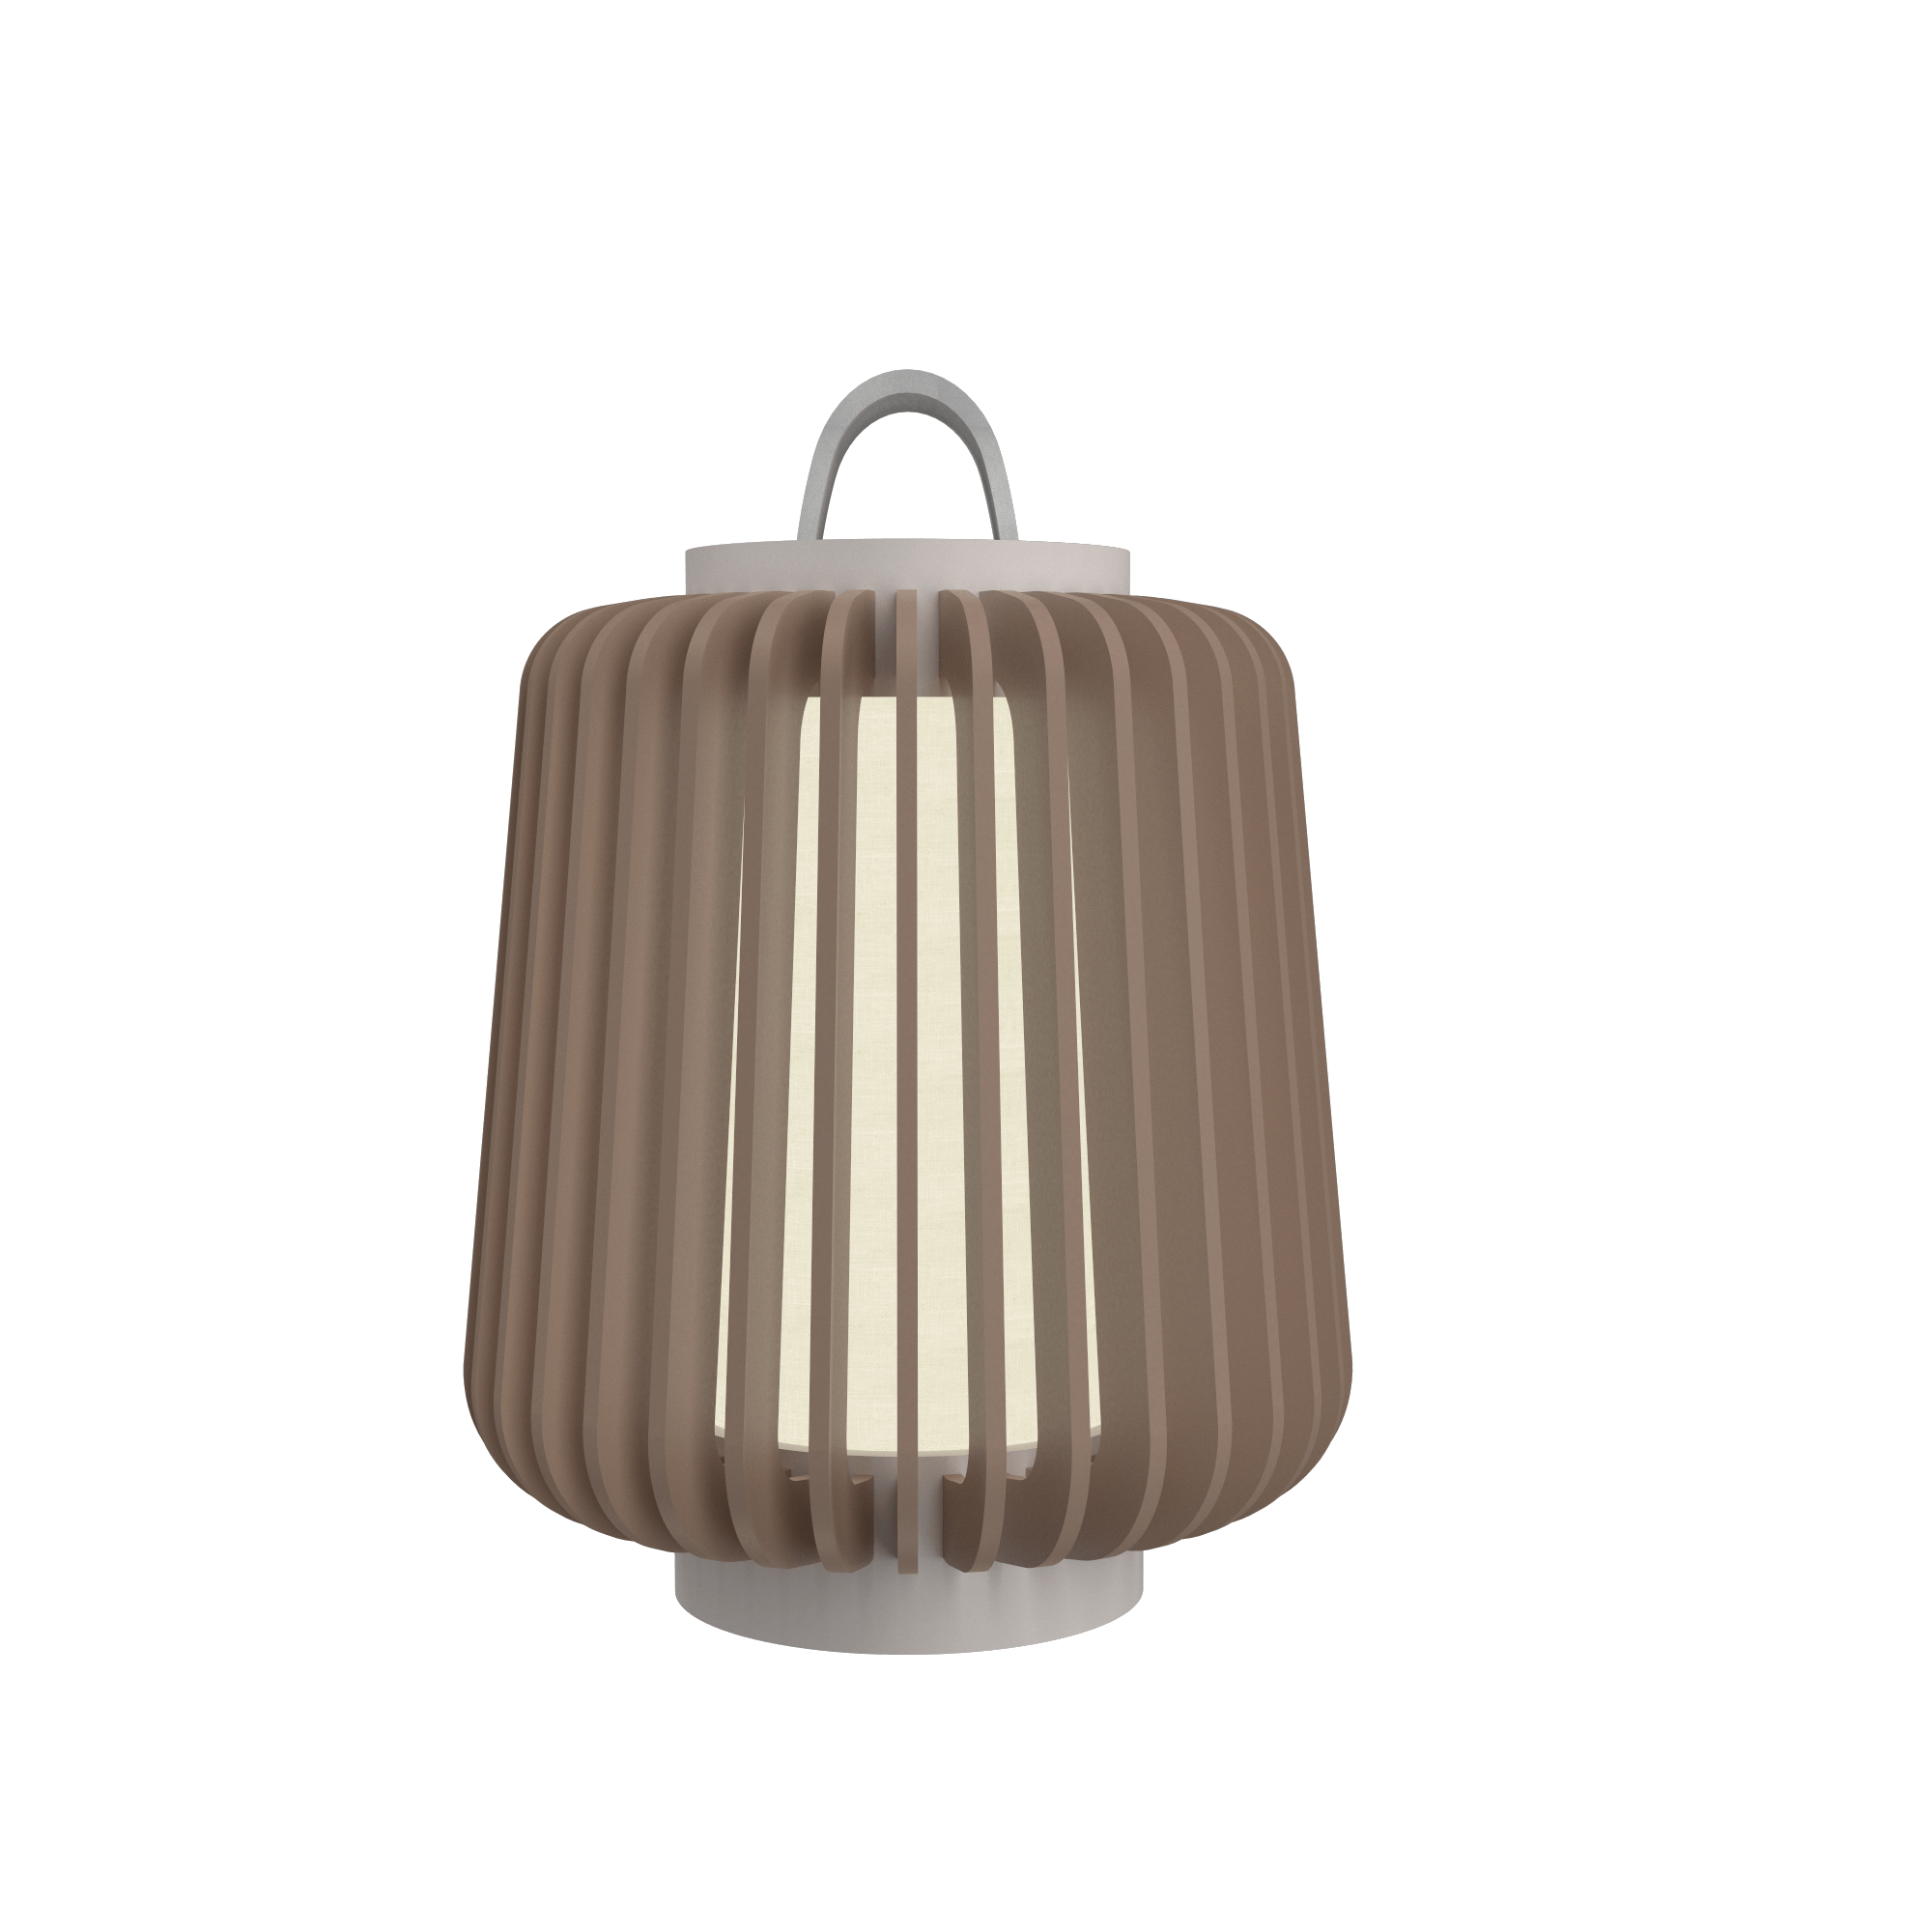 Table Lamp Accord Stecche Di Legno 7059 - Stecche Di Legno Line Accord Lighting | 33. Bronze